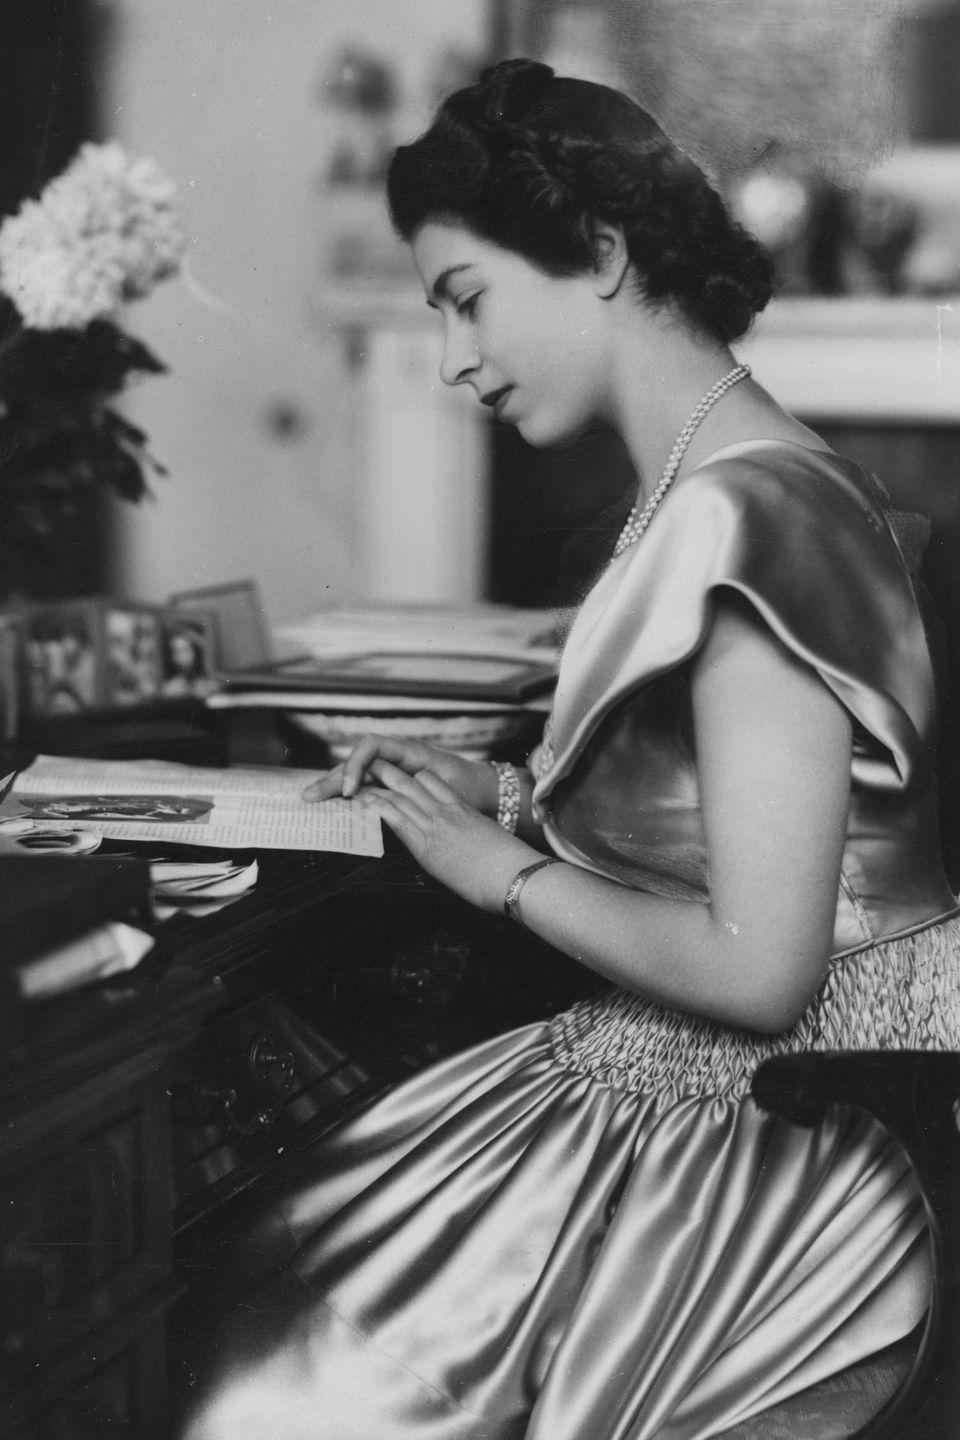 <p>The queen wore a satin dress, pearl necklace, and bracelets while she read at her desk in Buckingham Palace.</p>